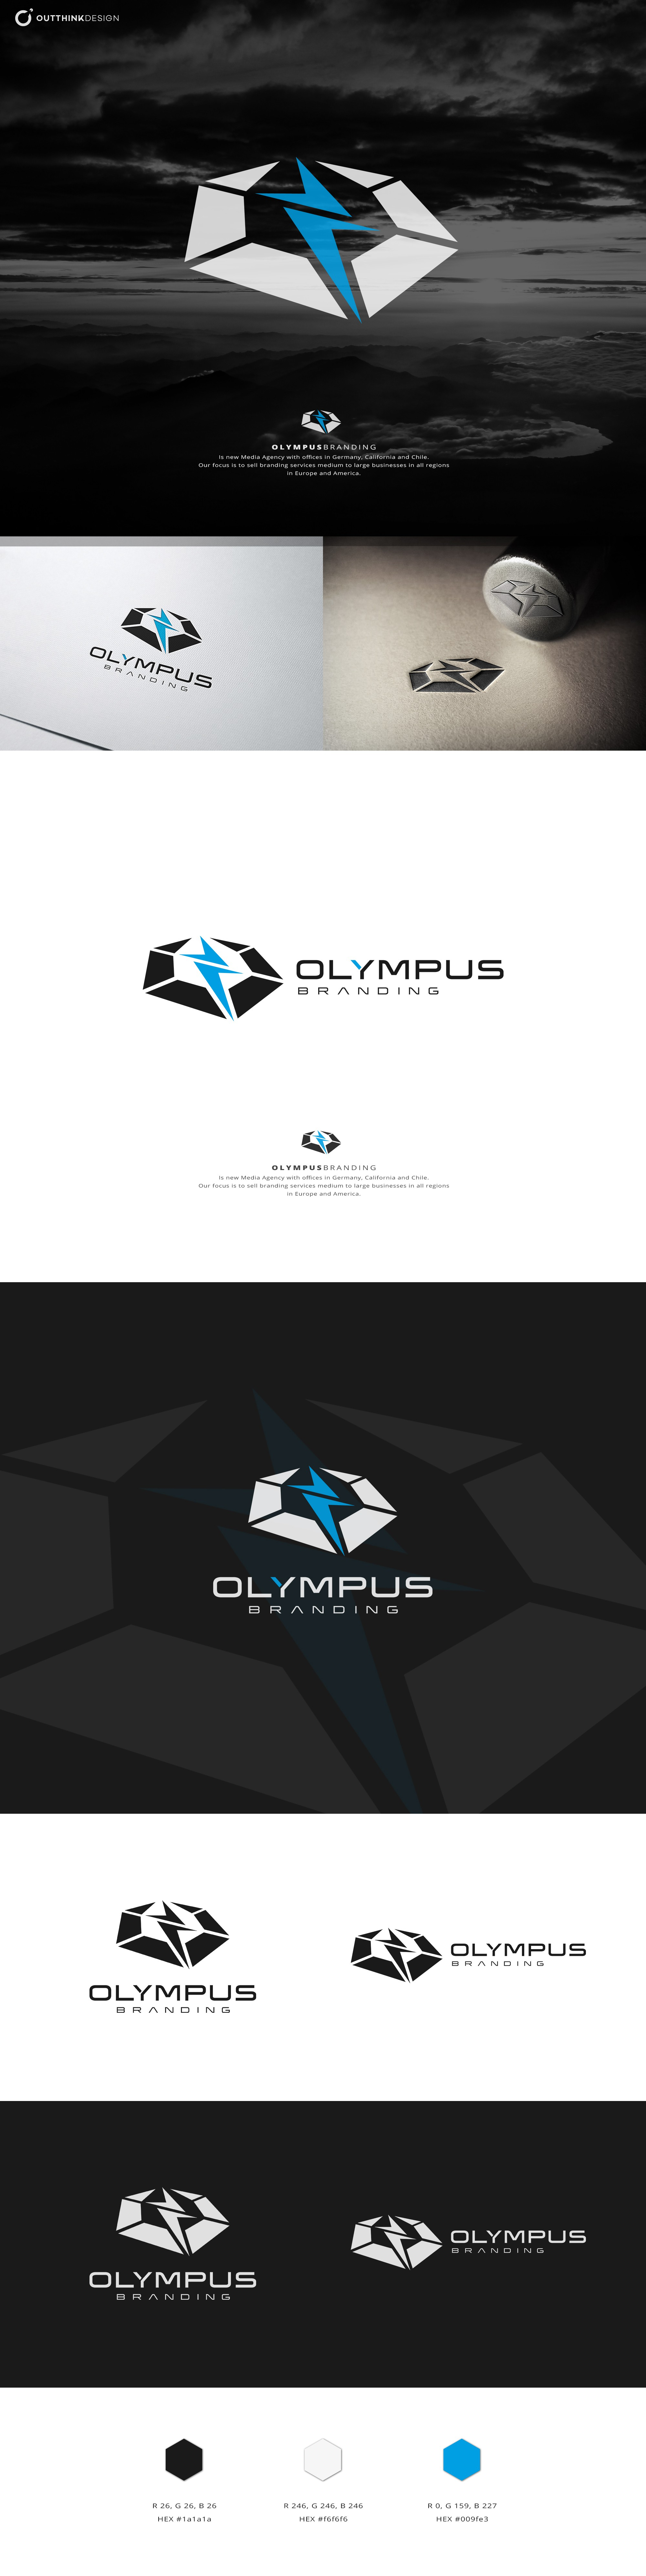 New Agency with Big Dreams and Great Name Needs a LOGO!